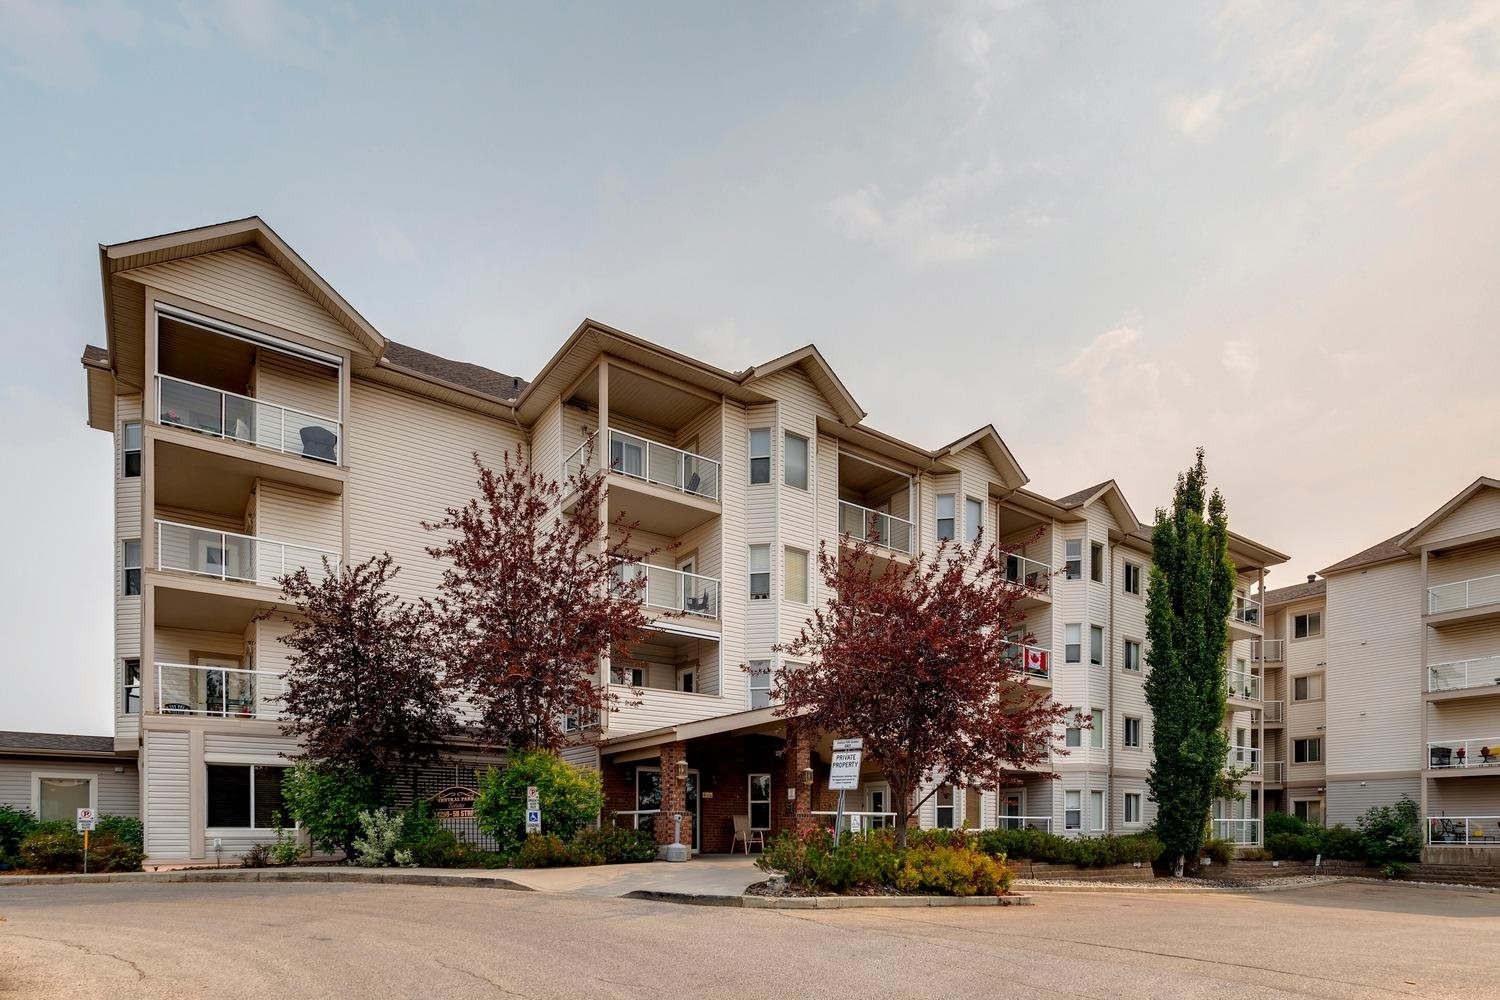 EXCELLENT OPPORTUNITY TO ENJOY A COMPLETELLY RENOVATED 2 BEDROOM 2 Parking stall CONDO WITH AN ACTIVE ADULT LIFESTYLE AT A GREAT PRICE! 55 or over, wheelchair accessible, Located in the popular and desirable complex of Central Park Estates in NE Edmonton and a fantastic location close to lots of shopping, transit, LRT, medical center, legion, and so much more. 3rd floor, TWO bedroom, TWO full baths, with open concept floorplan. There's also TWO PARKING STALLS (one UNDERGROUND WITH STORAGE CAGE and the second is an OUTDOOR STALL close to entry). The kitchen features oak cabinetry and a breakfast bar for casual dining, good sized living room with garden door to balcony, master bedroom has a walk-through closet and a full en suite. There's also a big storage room with stackable washer and dryer, and Upgraded lighting thru out. complex offer wonderful amenities, such as: a theatre, exercise area, social room, games room, car wash, plus a heated pedway to the Miller Crossing Care Center next door. well managed